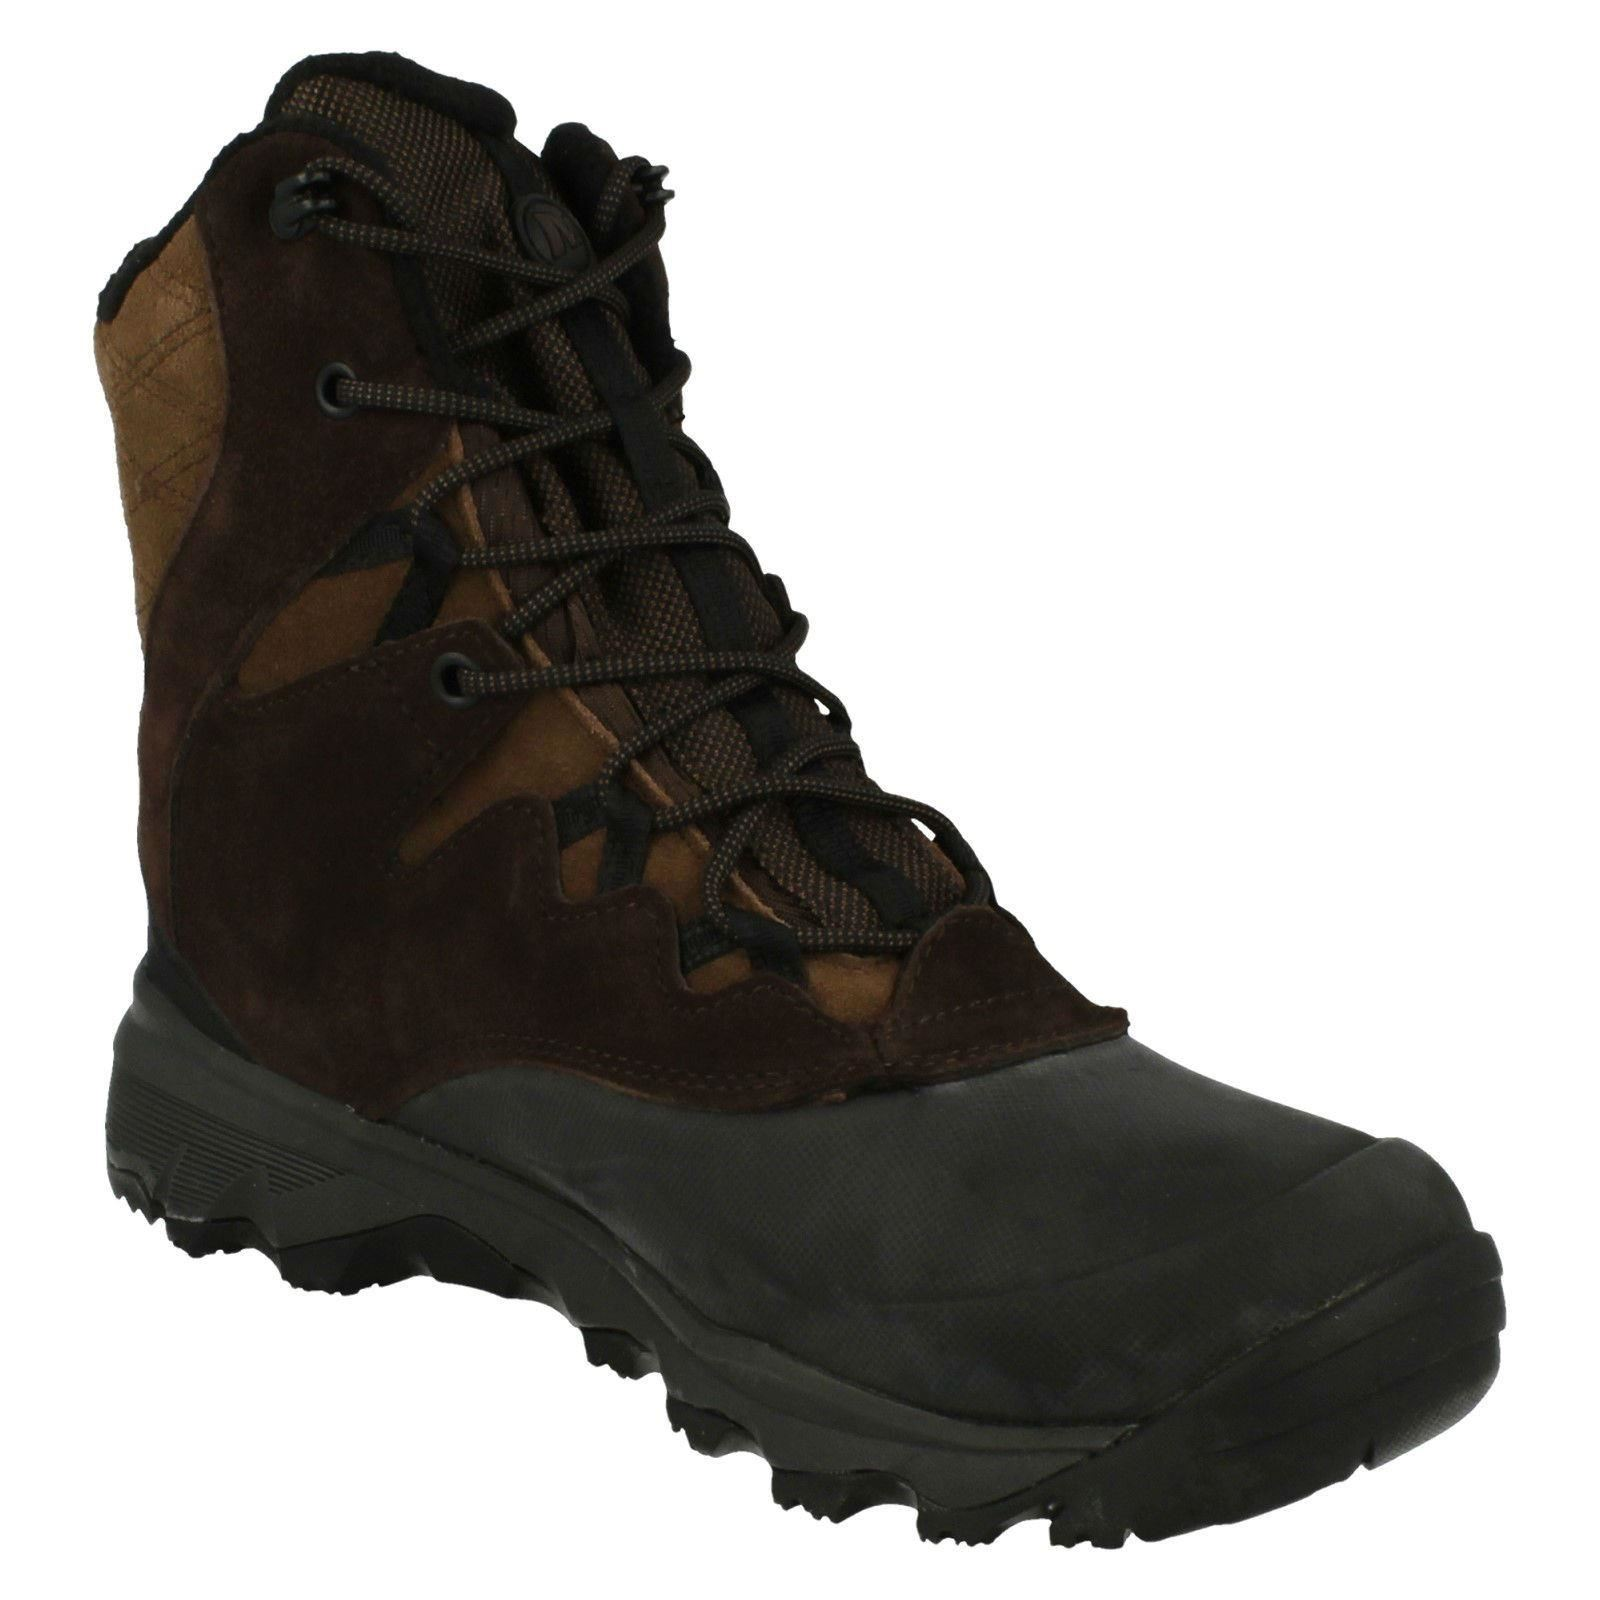 Merrell Mens Walking Boots - Thermo Shiver 8